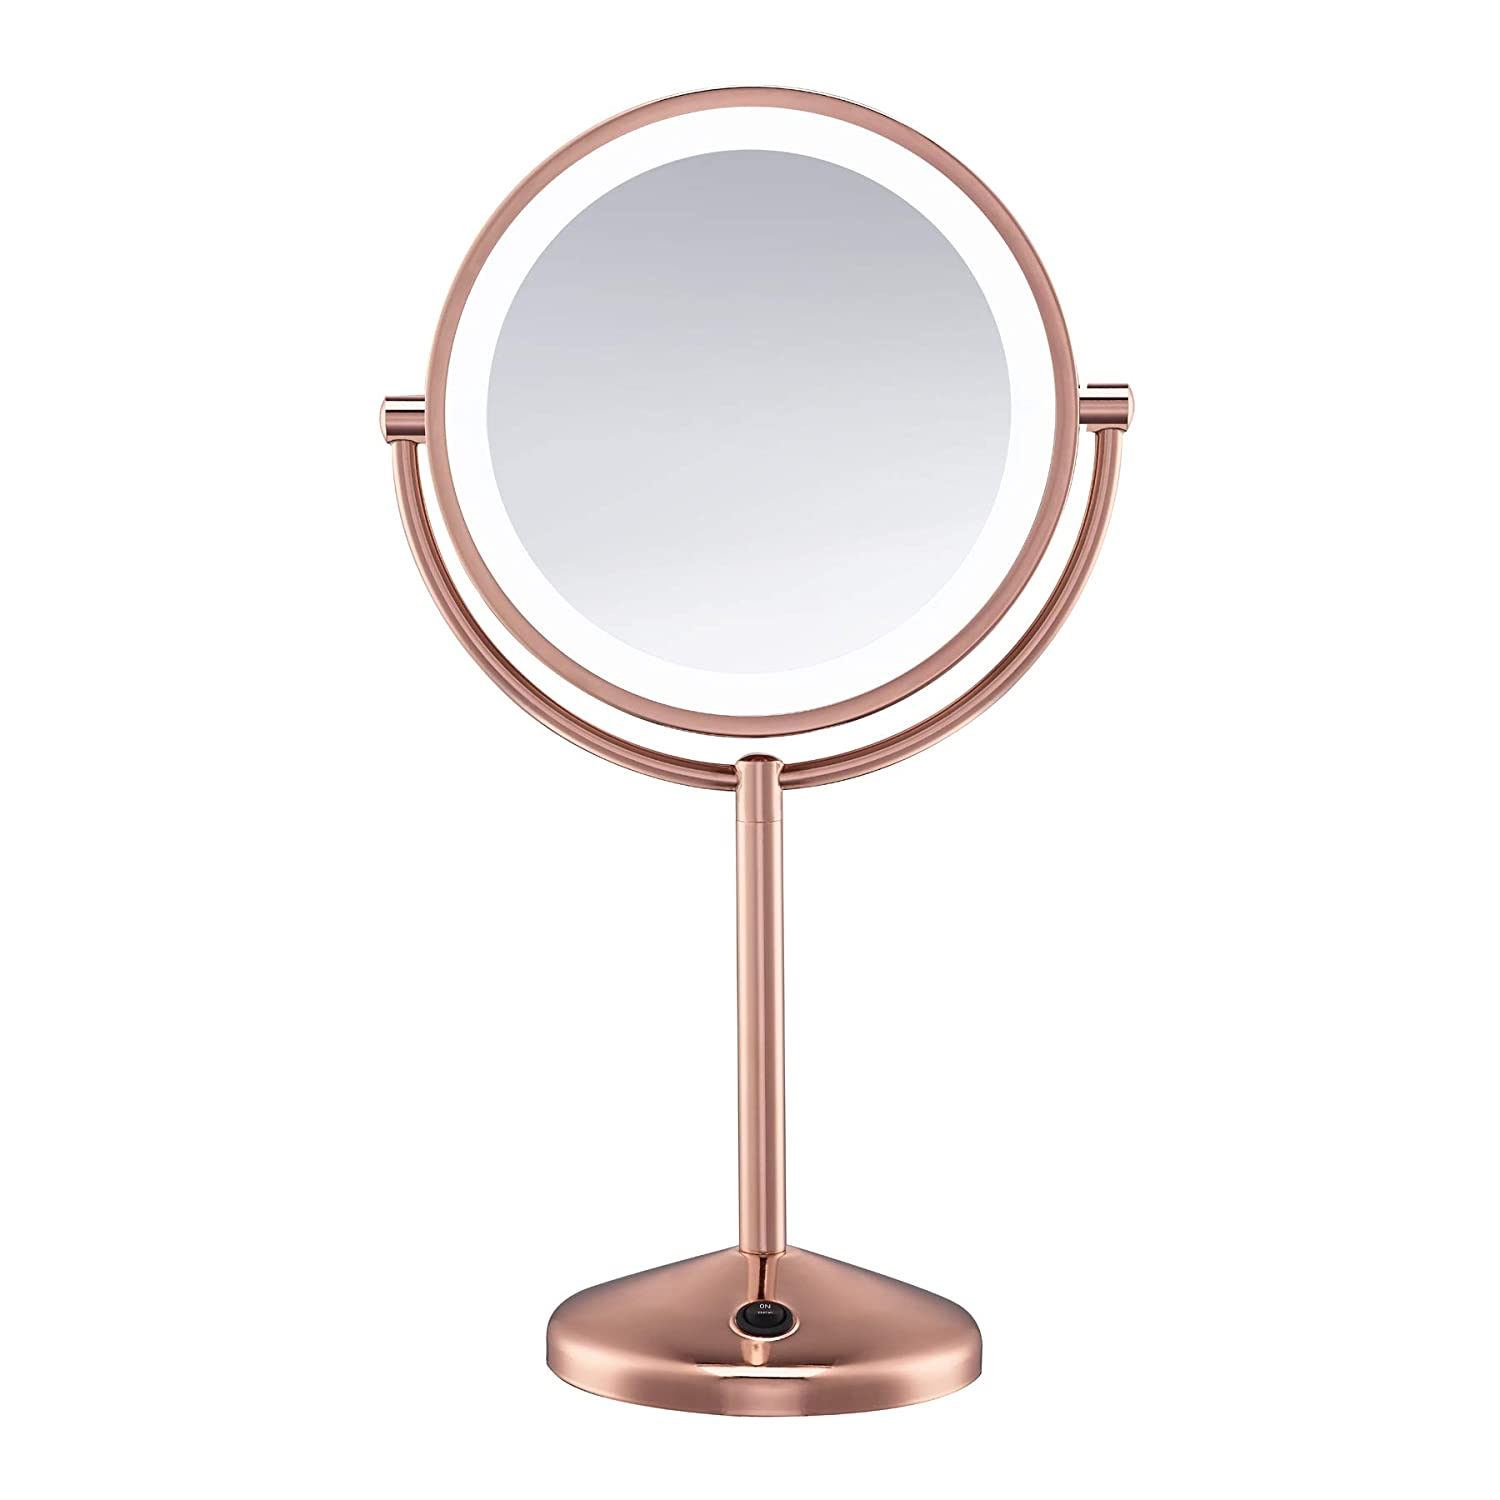 Conair Double-Sided Battery Operated Lighted Makeup Mirror - Lighted Vanity Makeup Mirror, LED Lighting, 1x / 10x Magnification, Rose Gold Finish